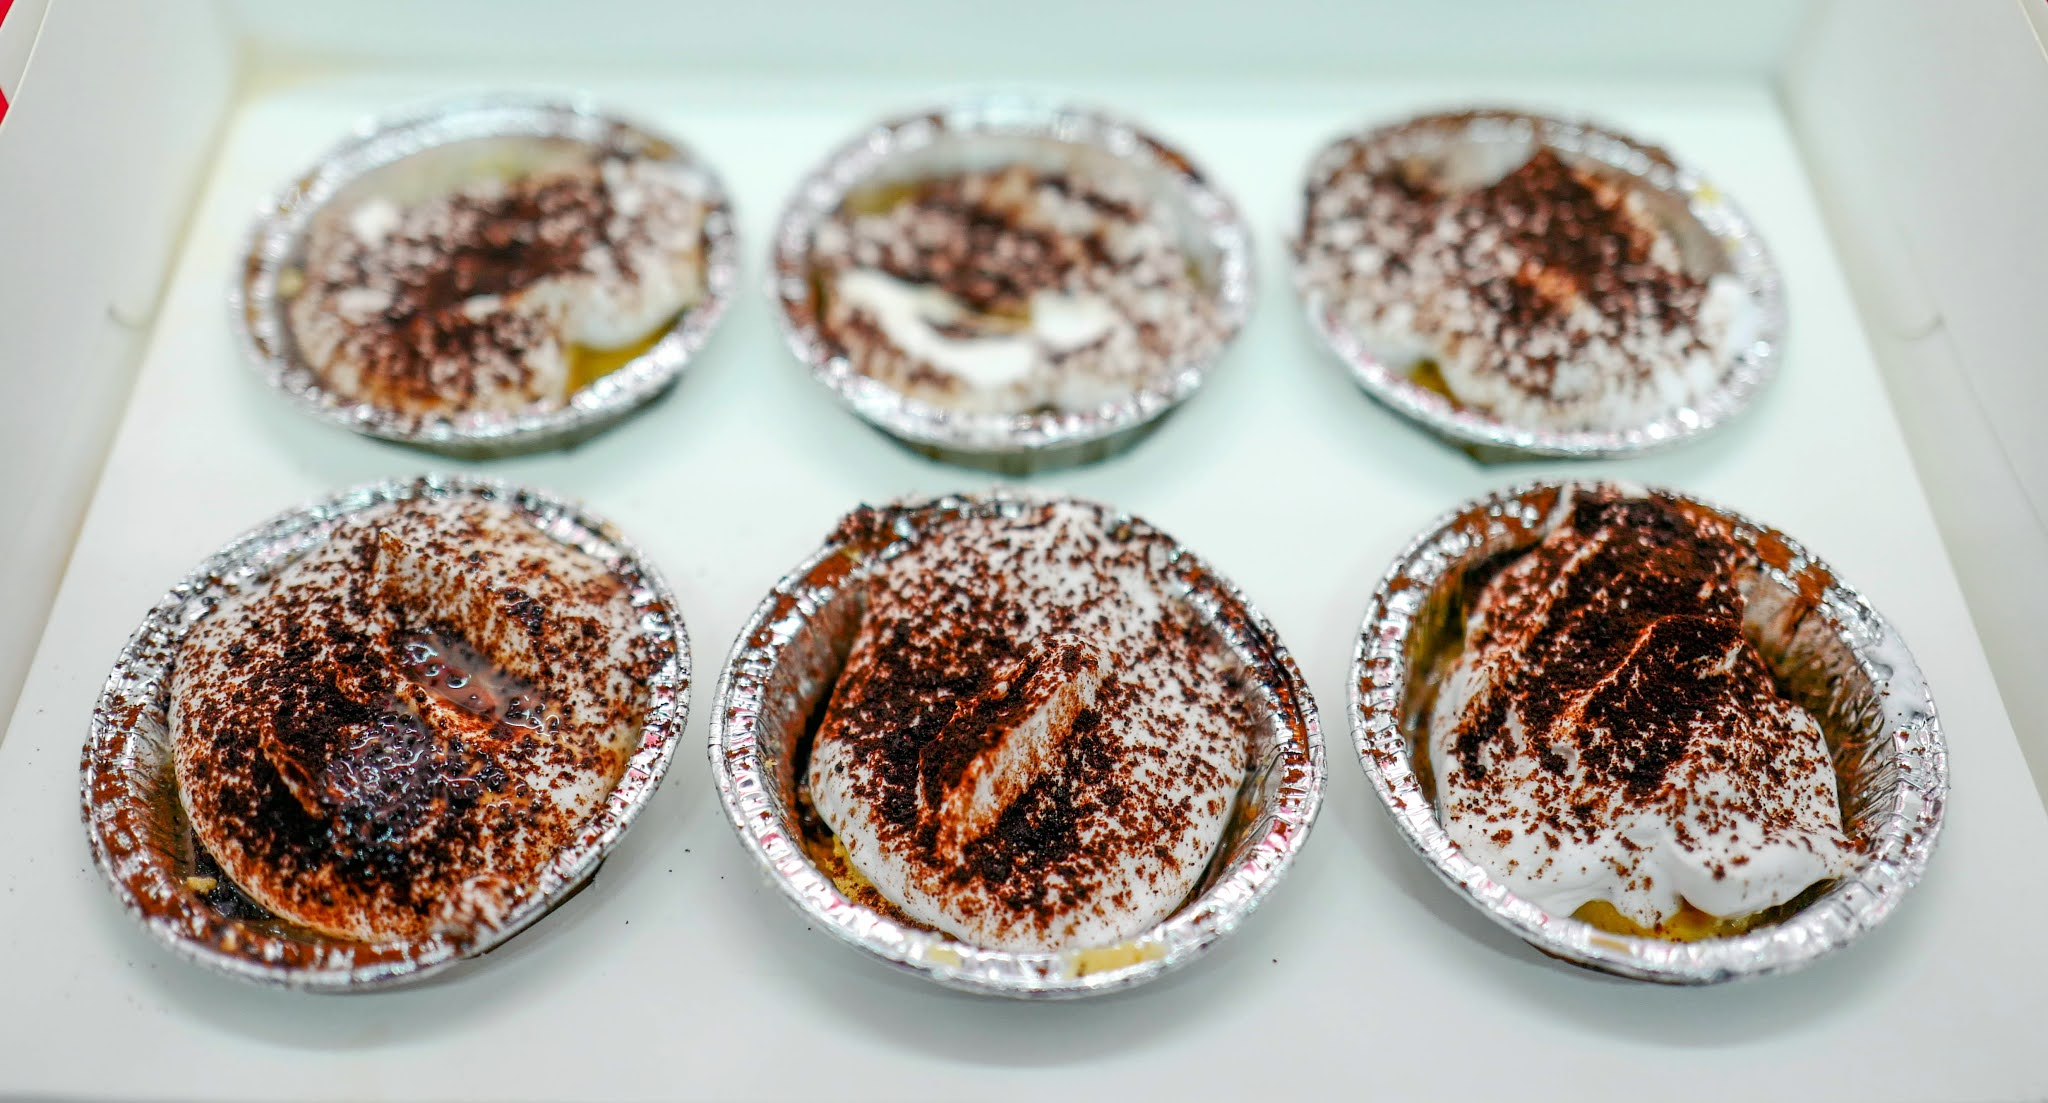 dolce desires: baking babynoffees